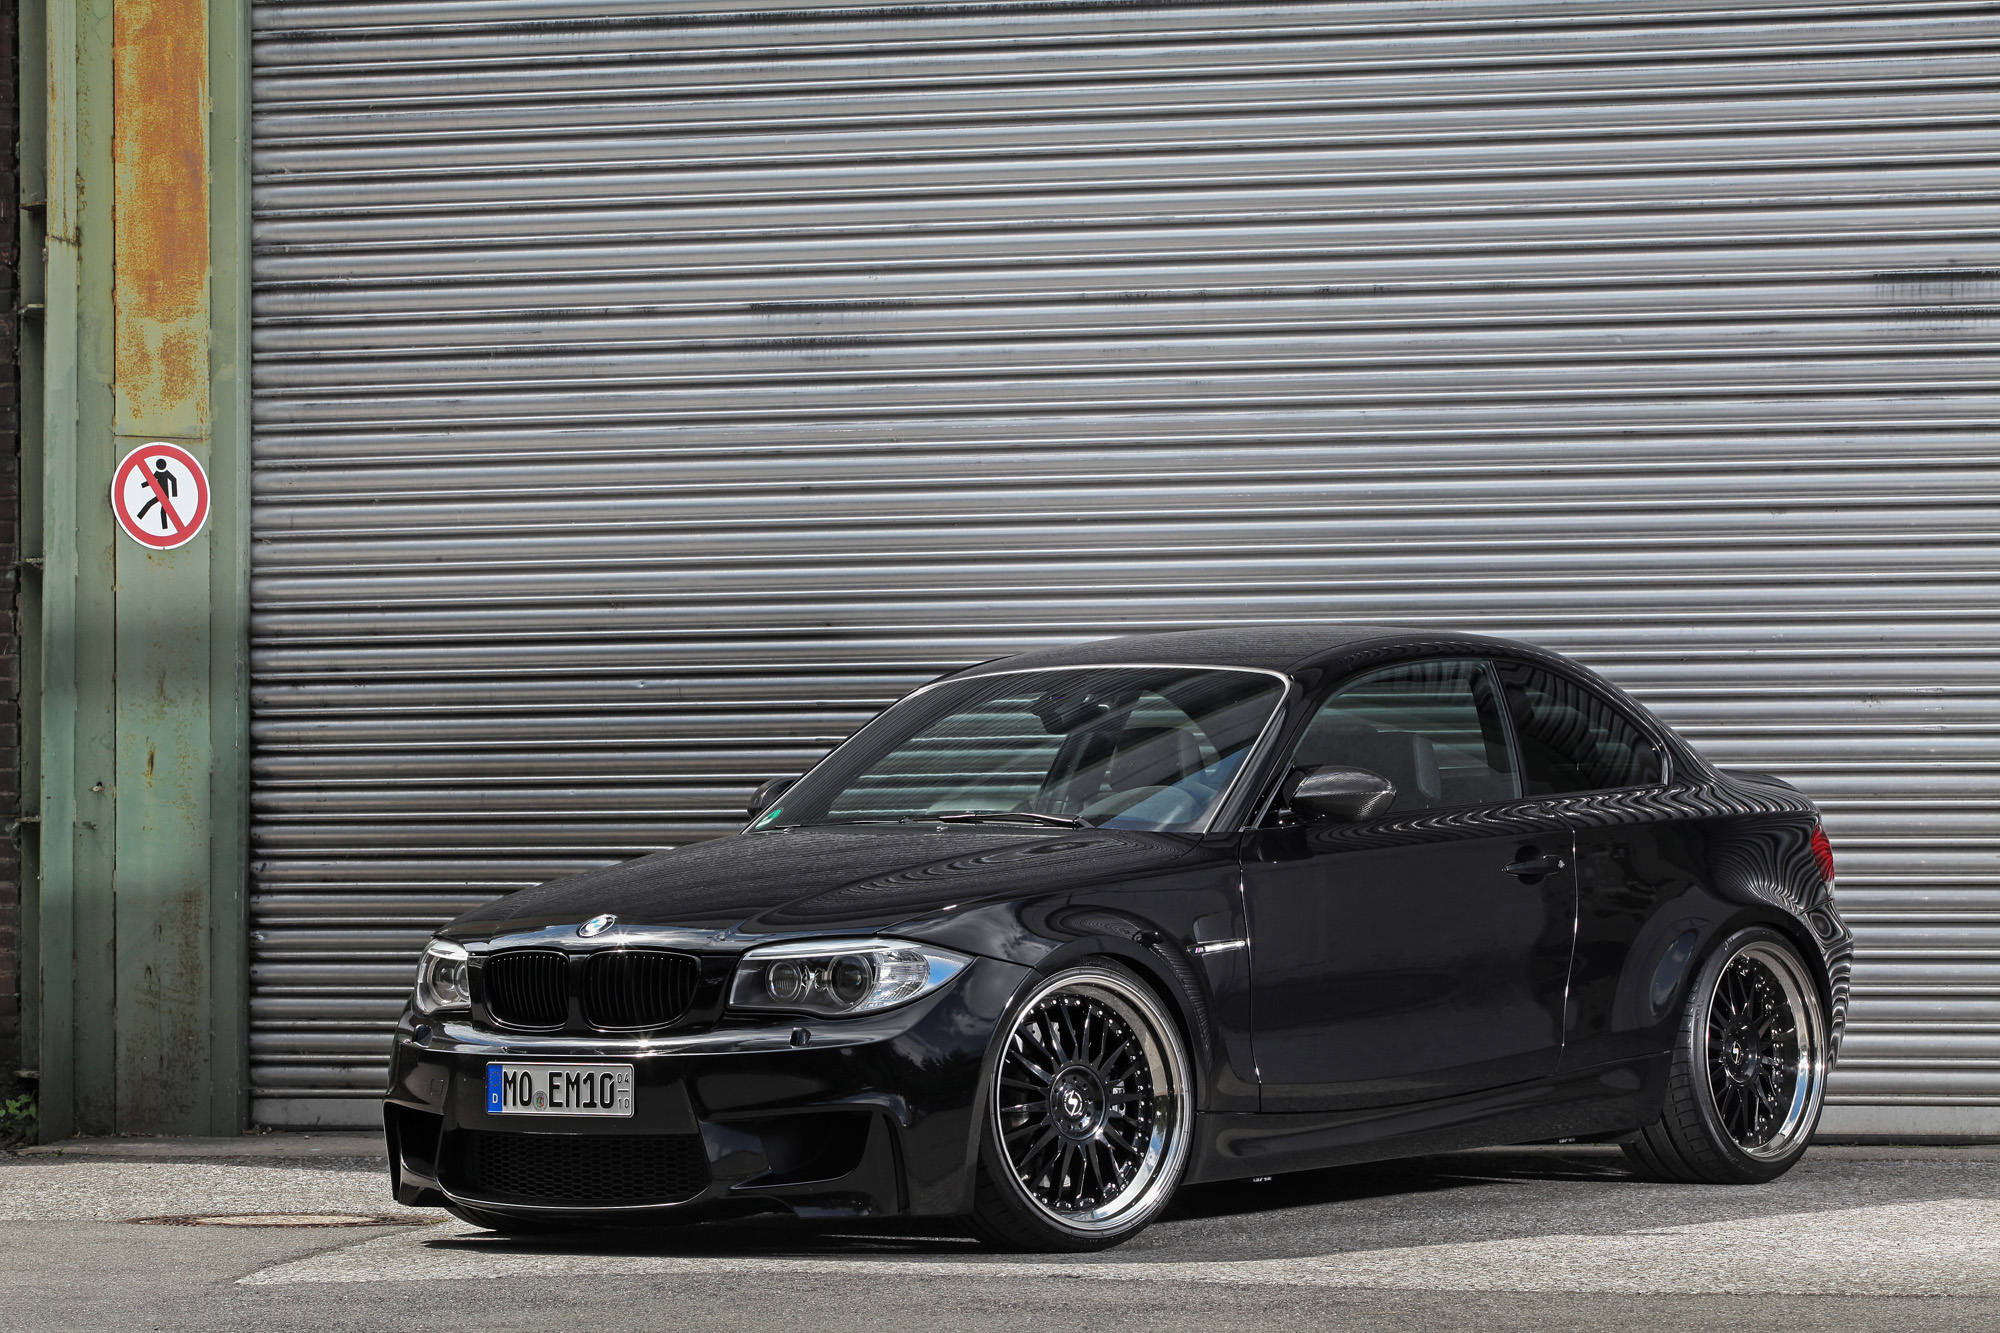 bmw-1er-m-coupé-e82-ok-chiptuning-10